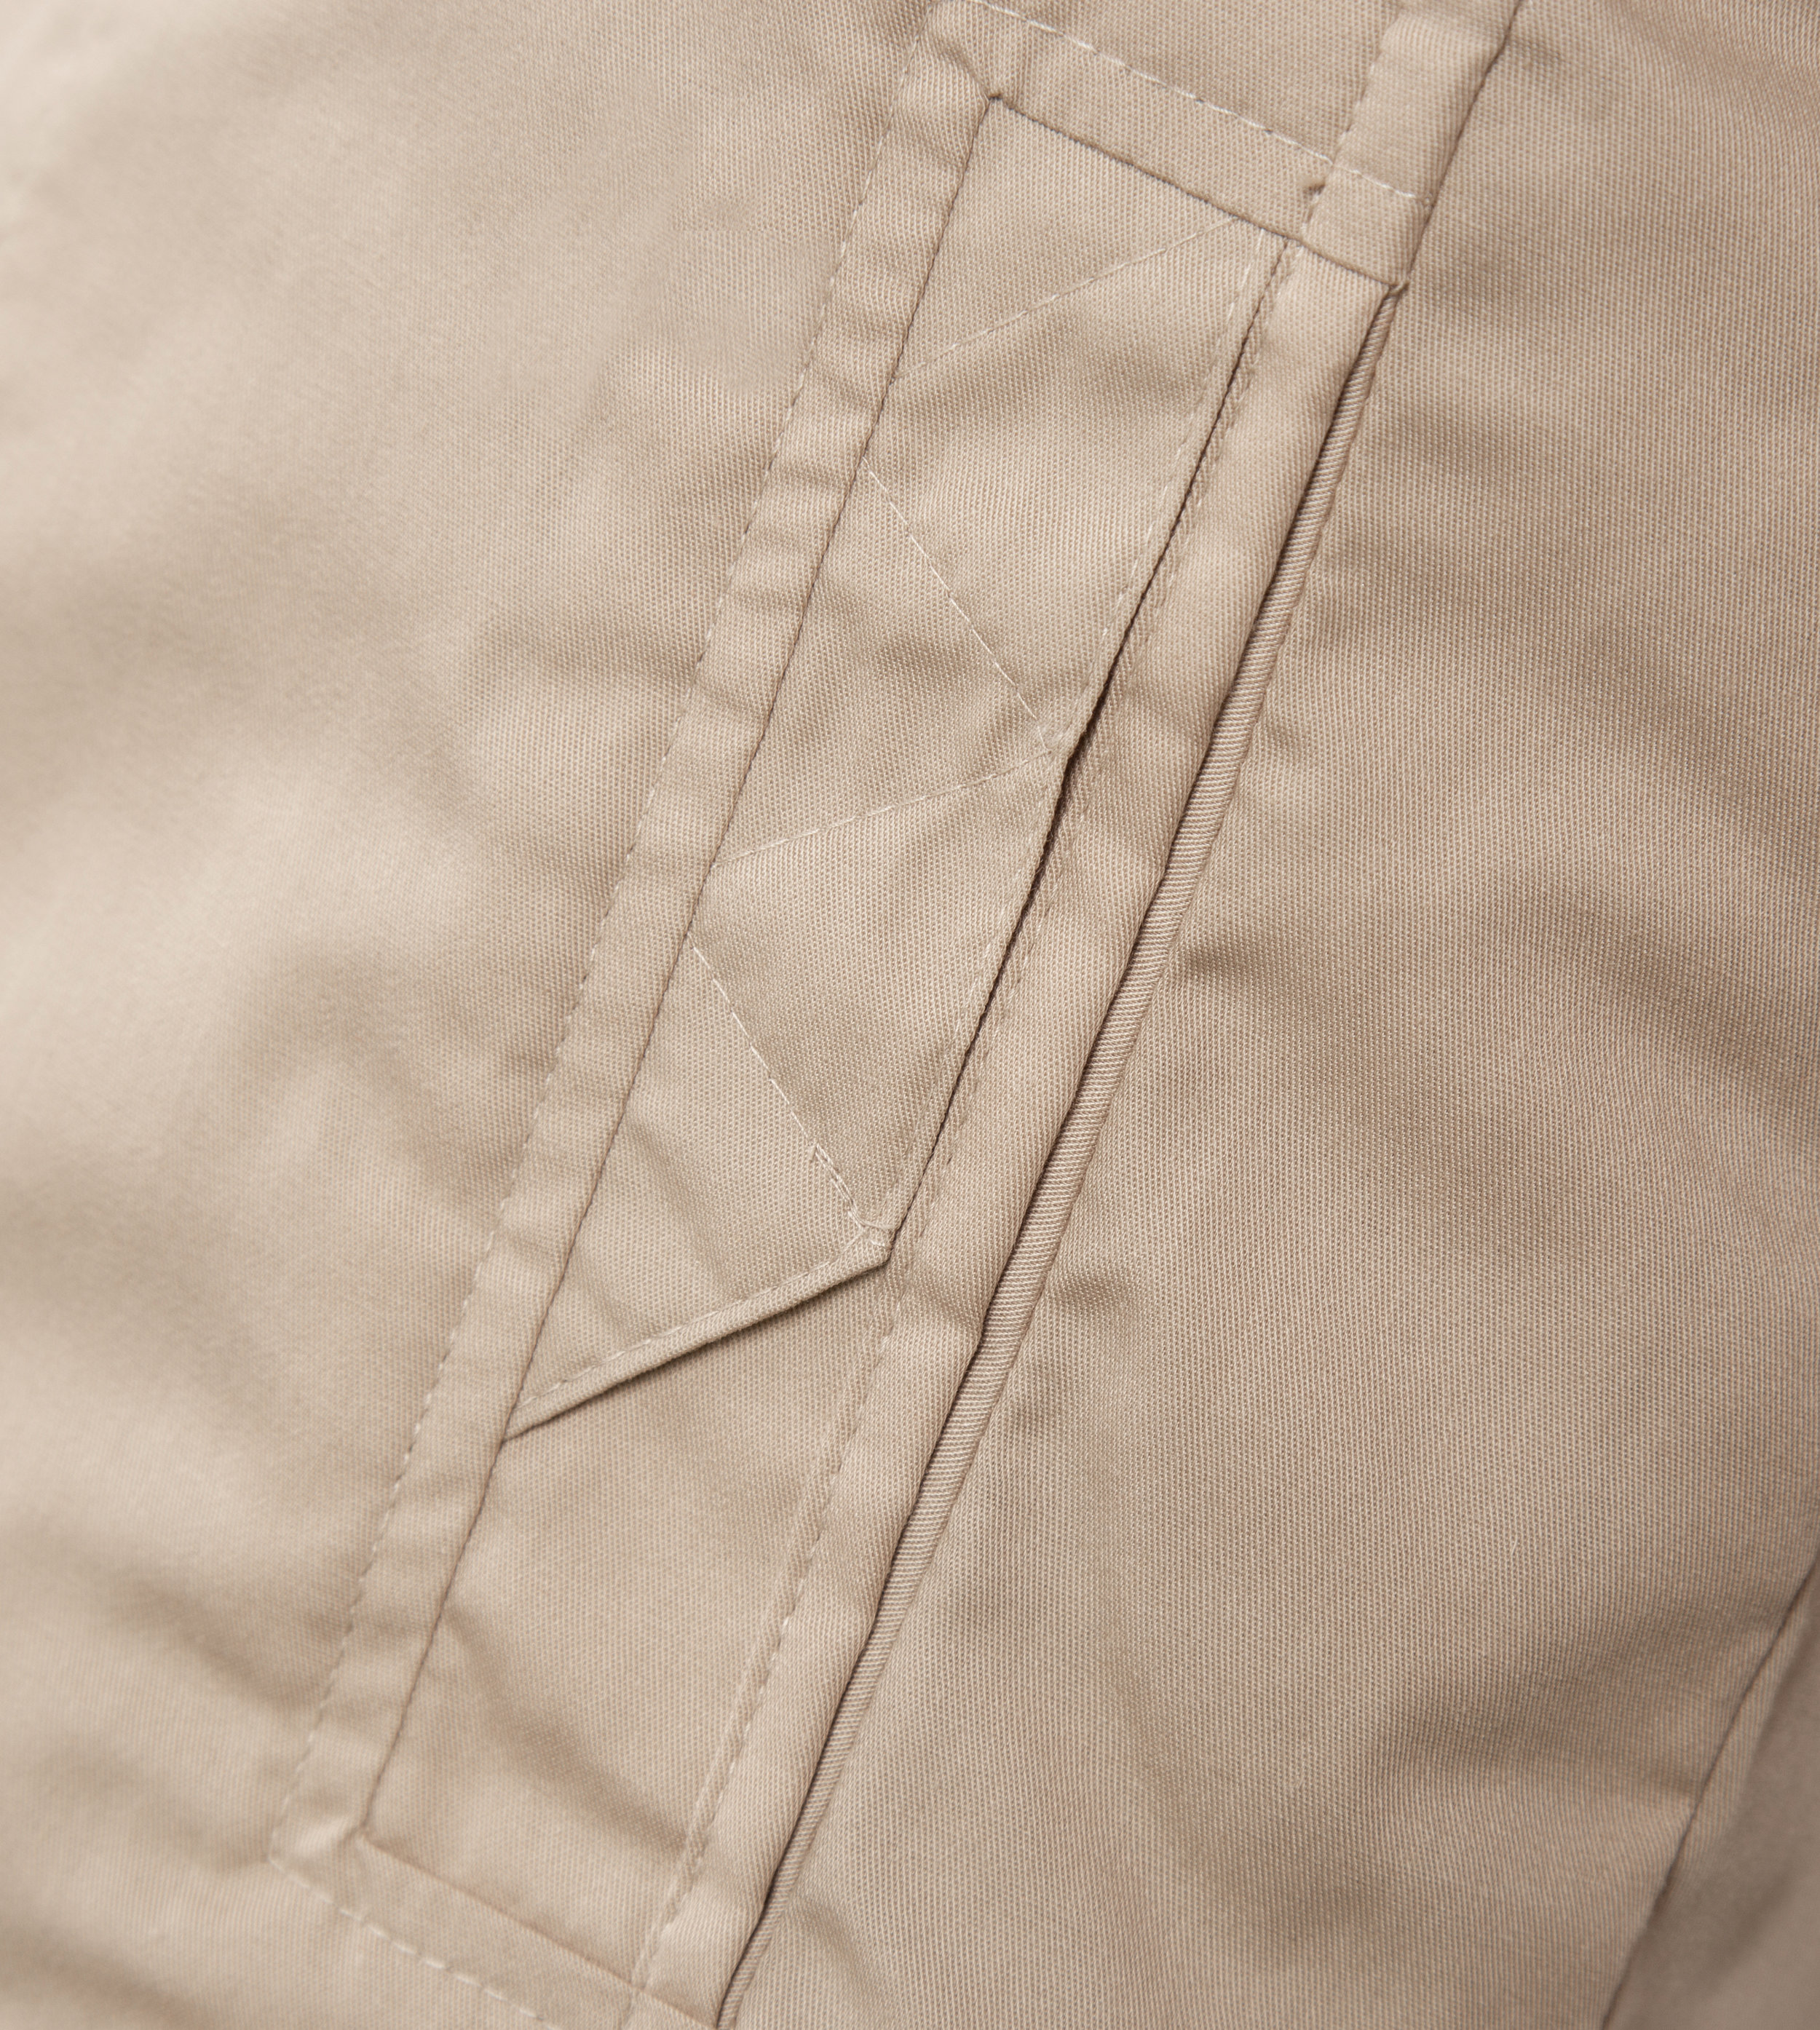 Tailored Projects-Custom Jacket-Bomber Jacket-NIA-Sewing2.jpg